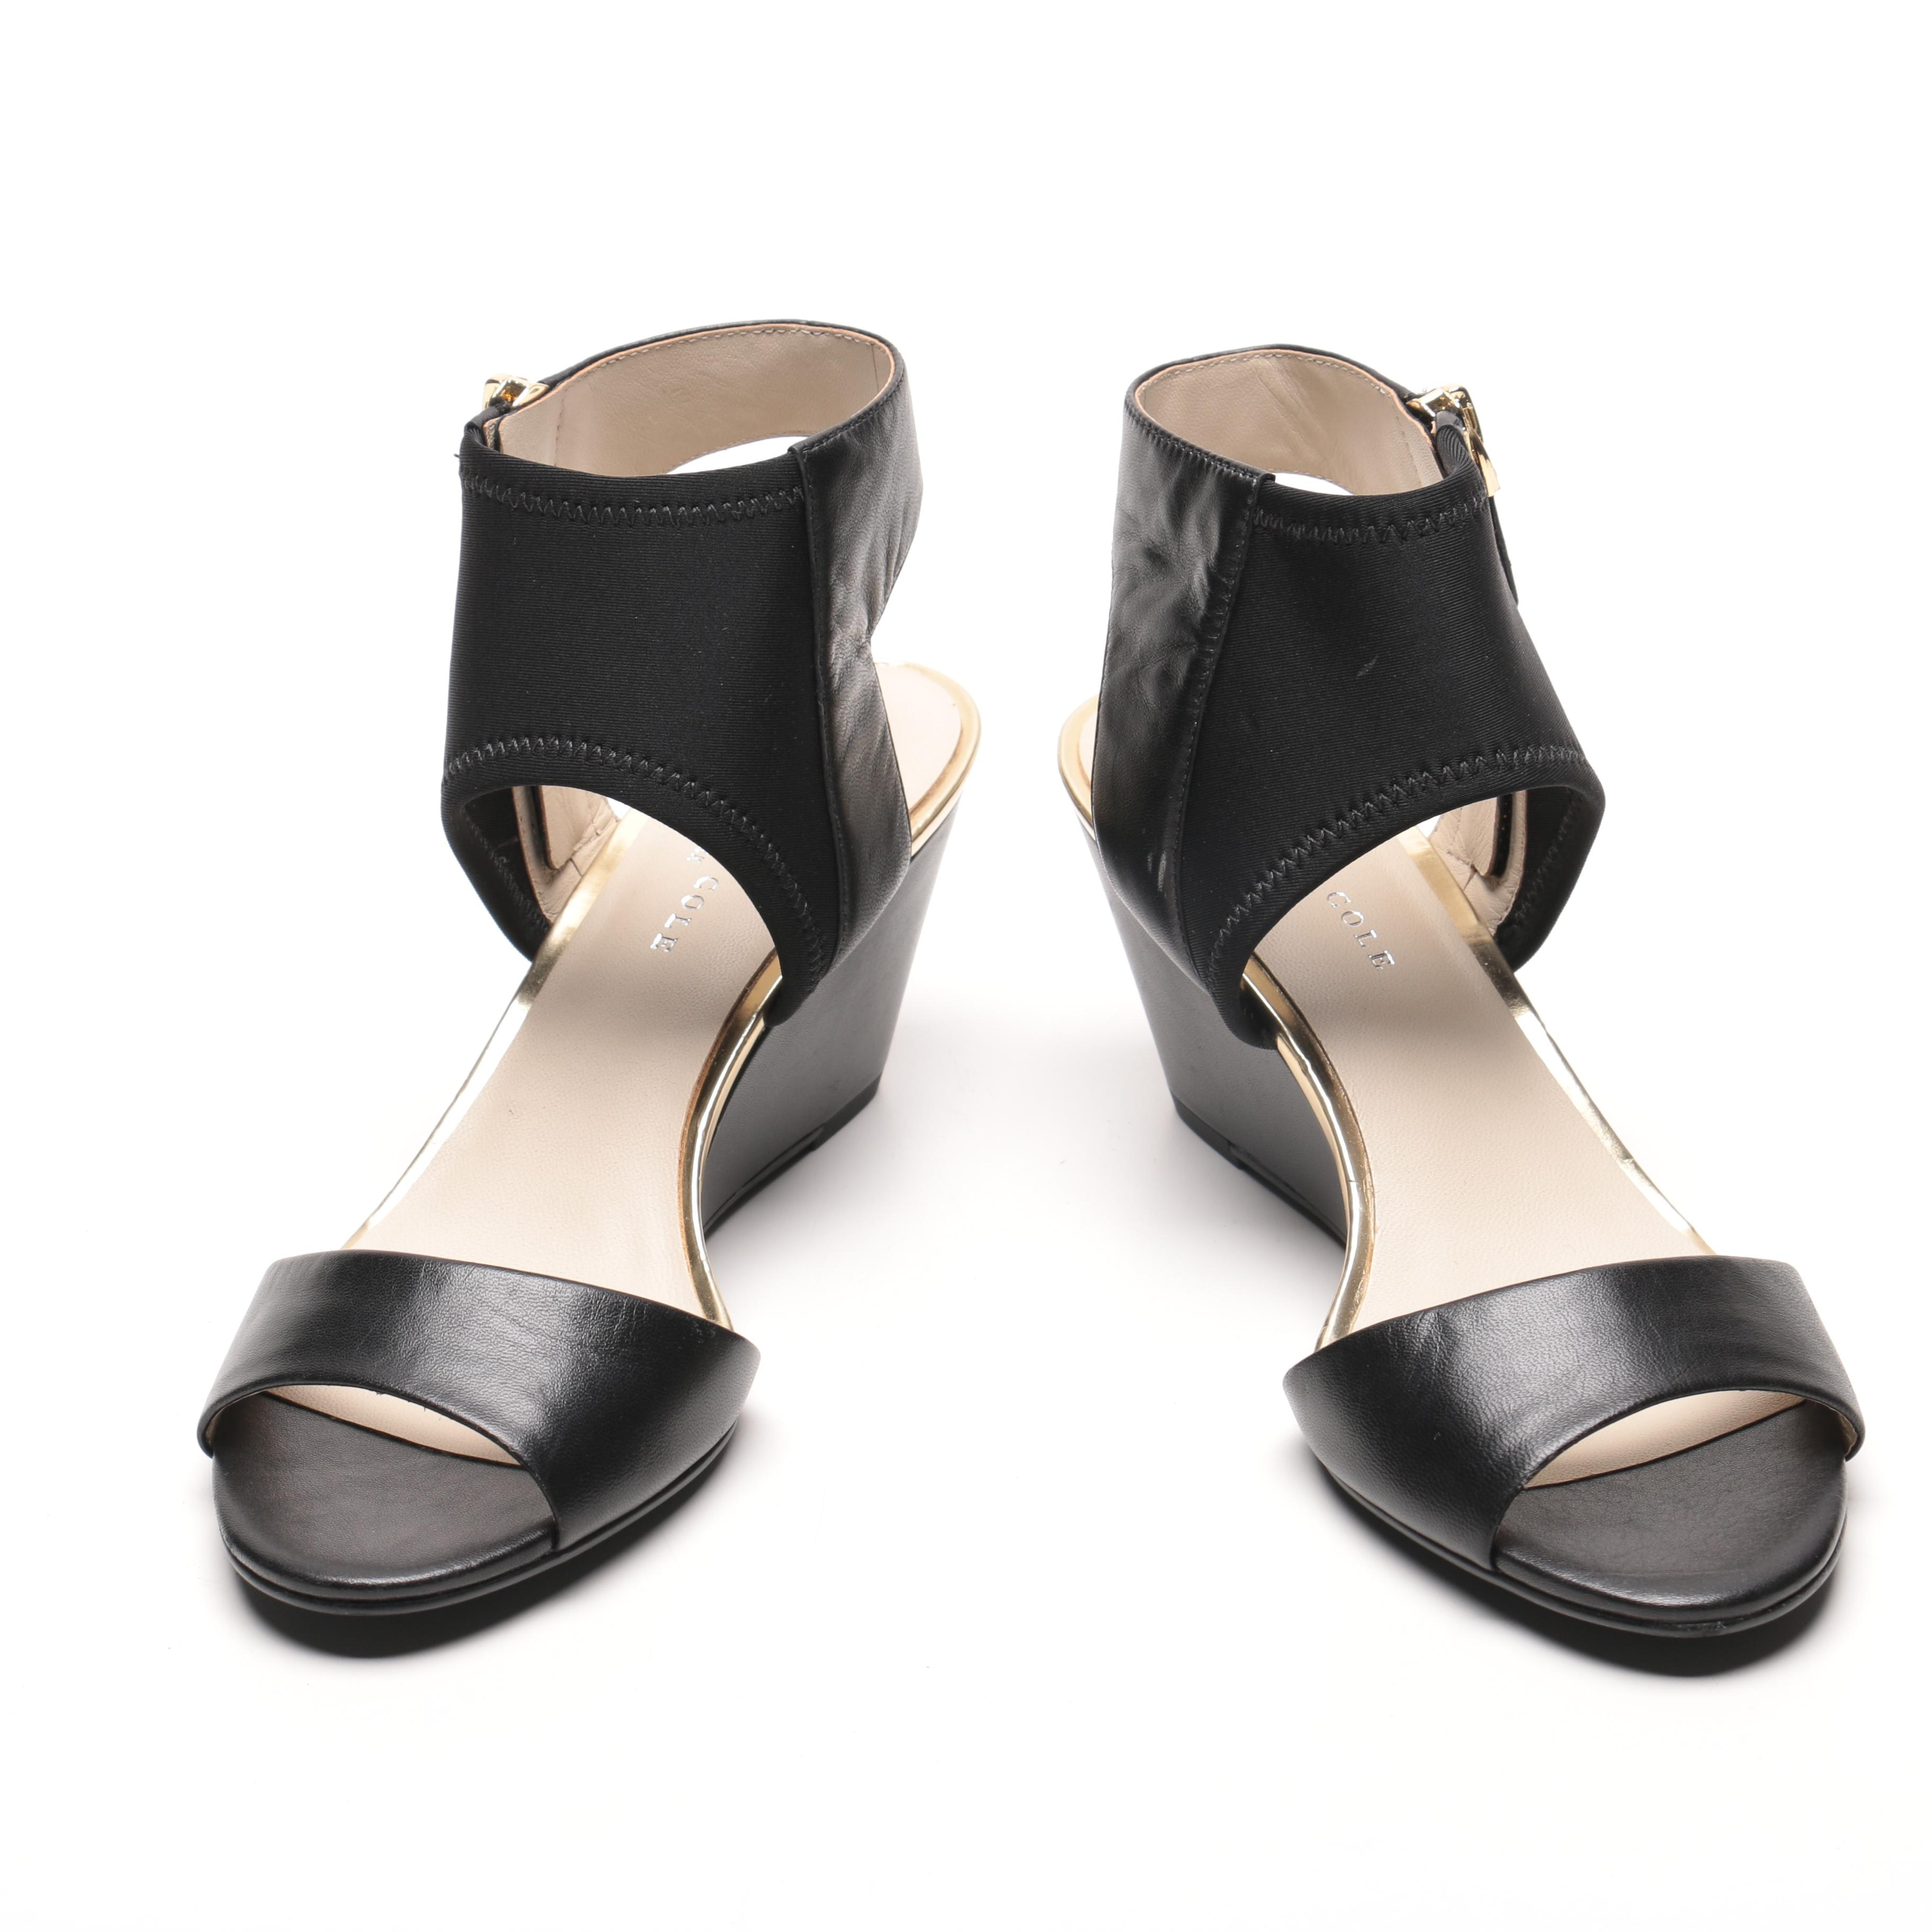 Kenneth Cole Black Leather Wedge Sandals